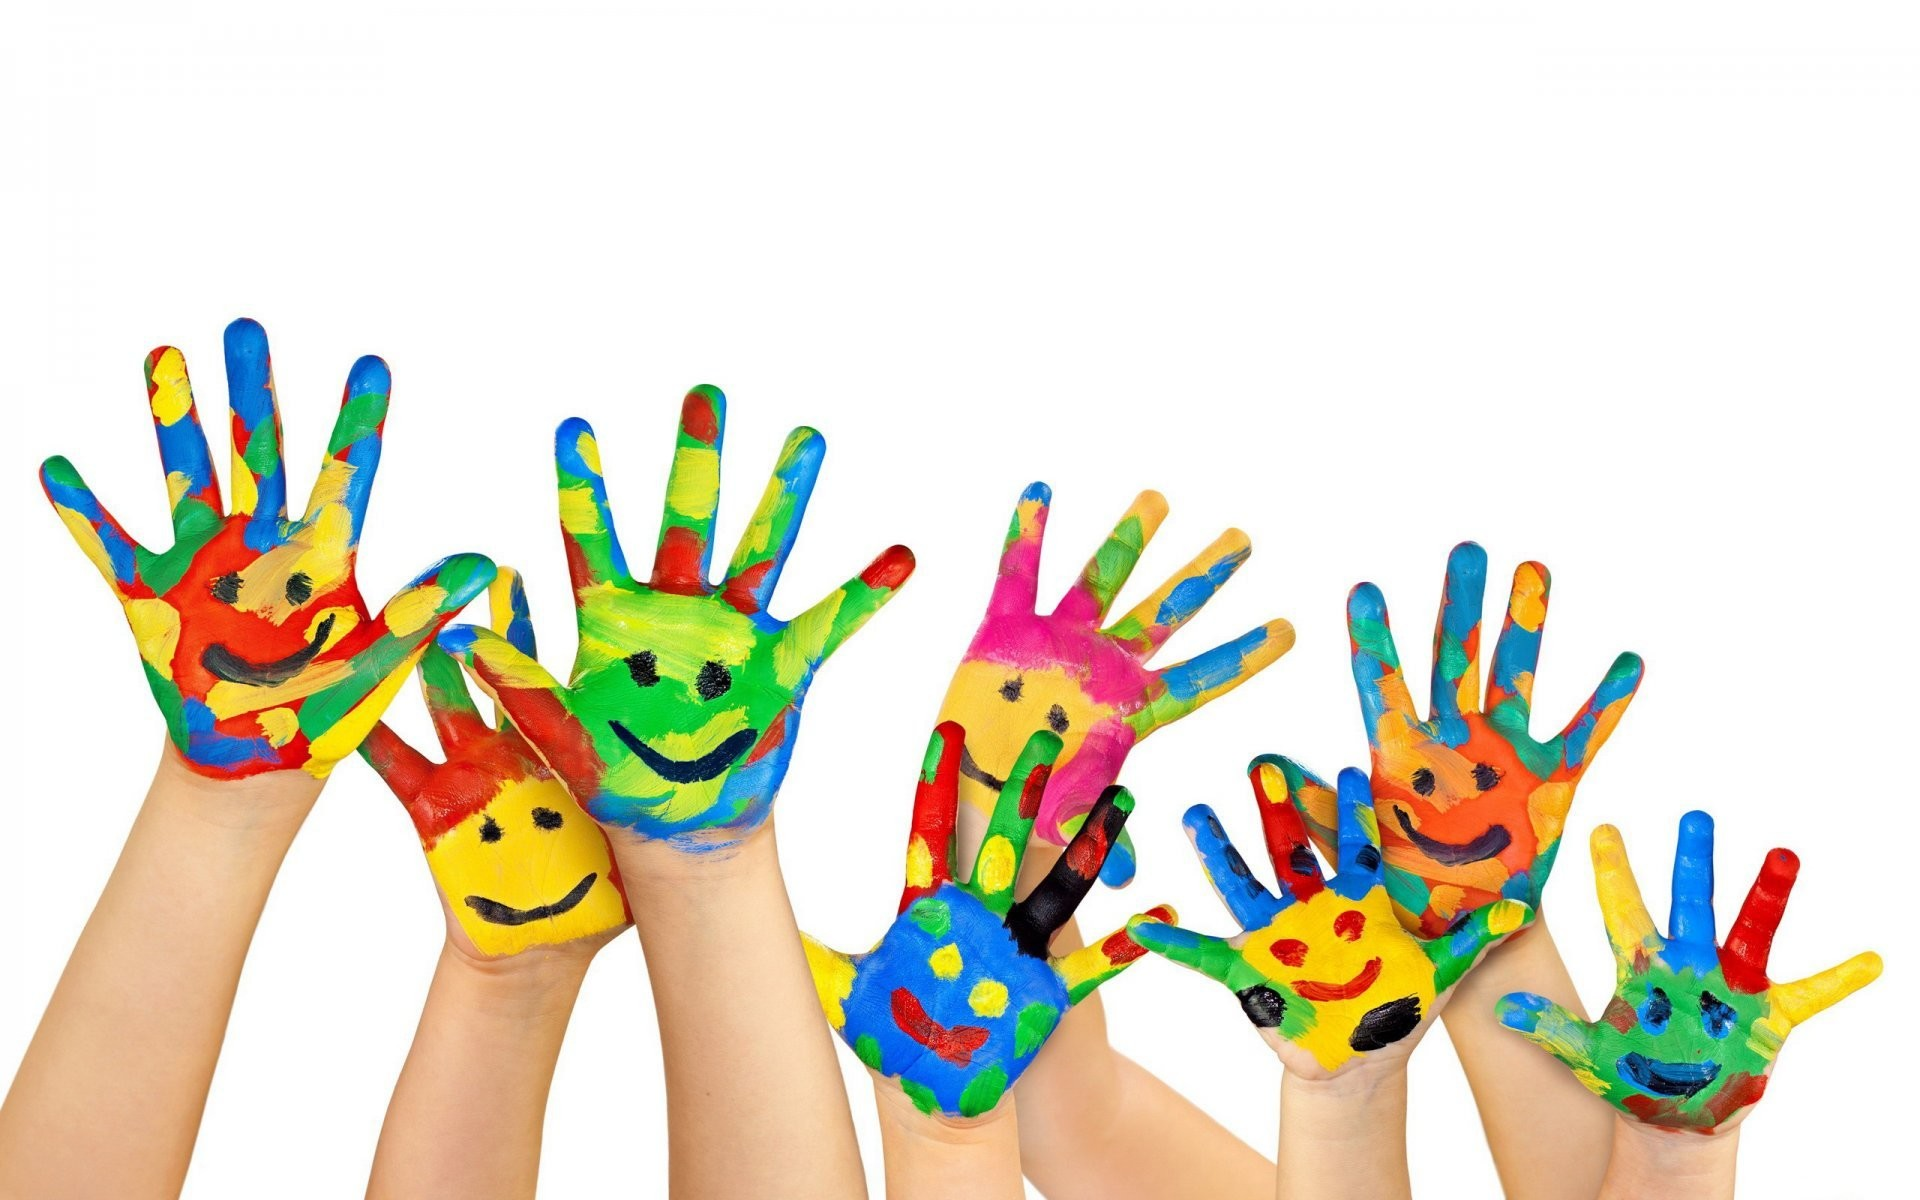 white background hands palm fingers paint flowers smile children childhood